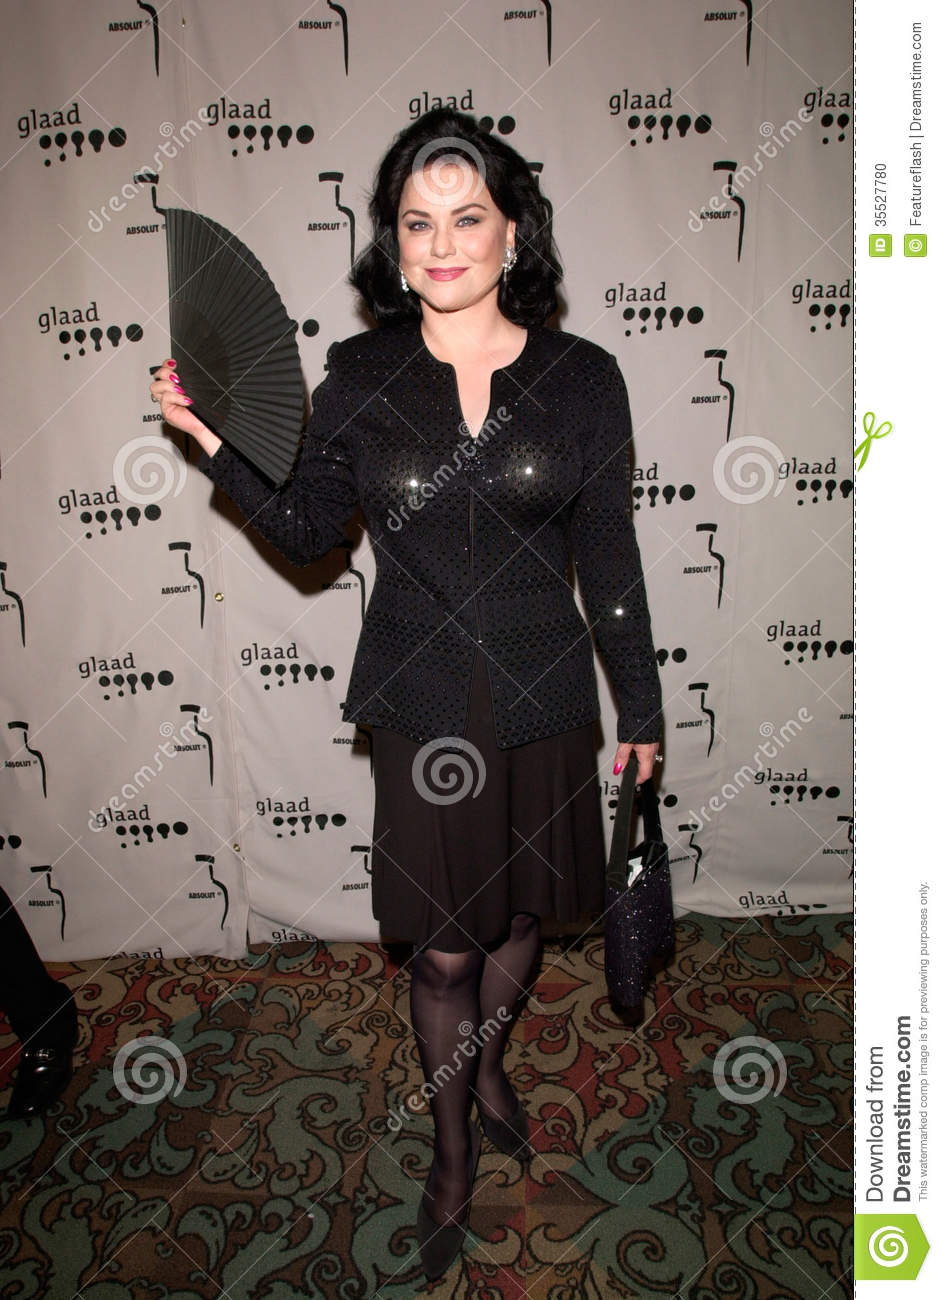 Actress DELTA BURKE at the Gay & Lesbian Alliance Against Defamation ...: www.dreamstime.com/stock-photo-delta-burke-apr-actress-gay-lesbian...